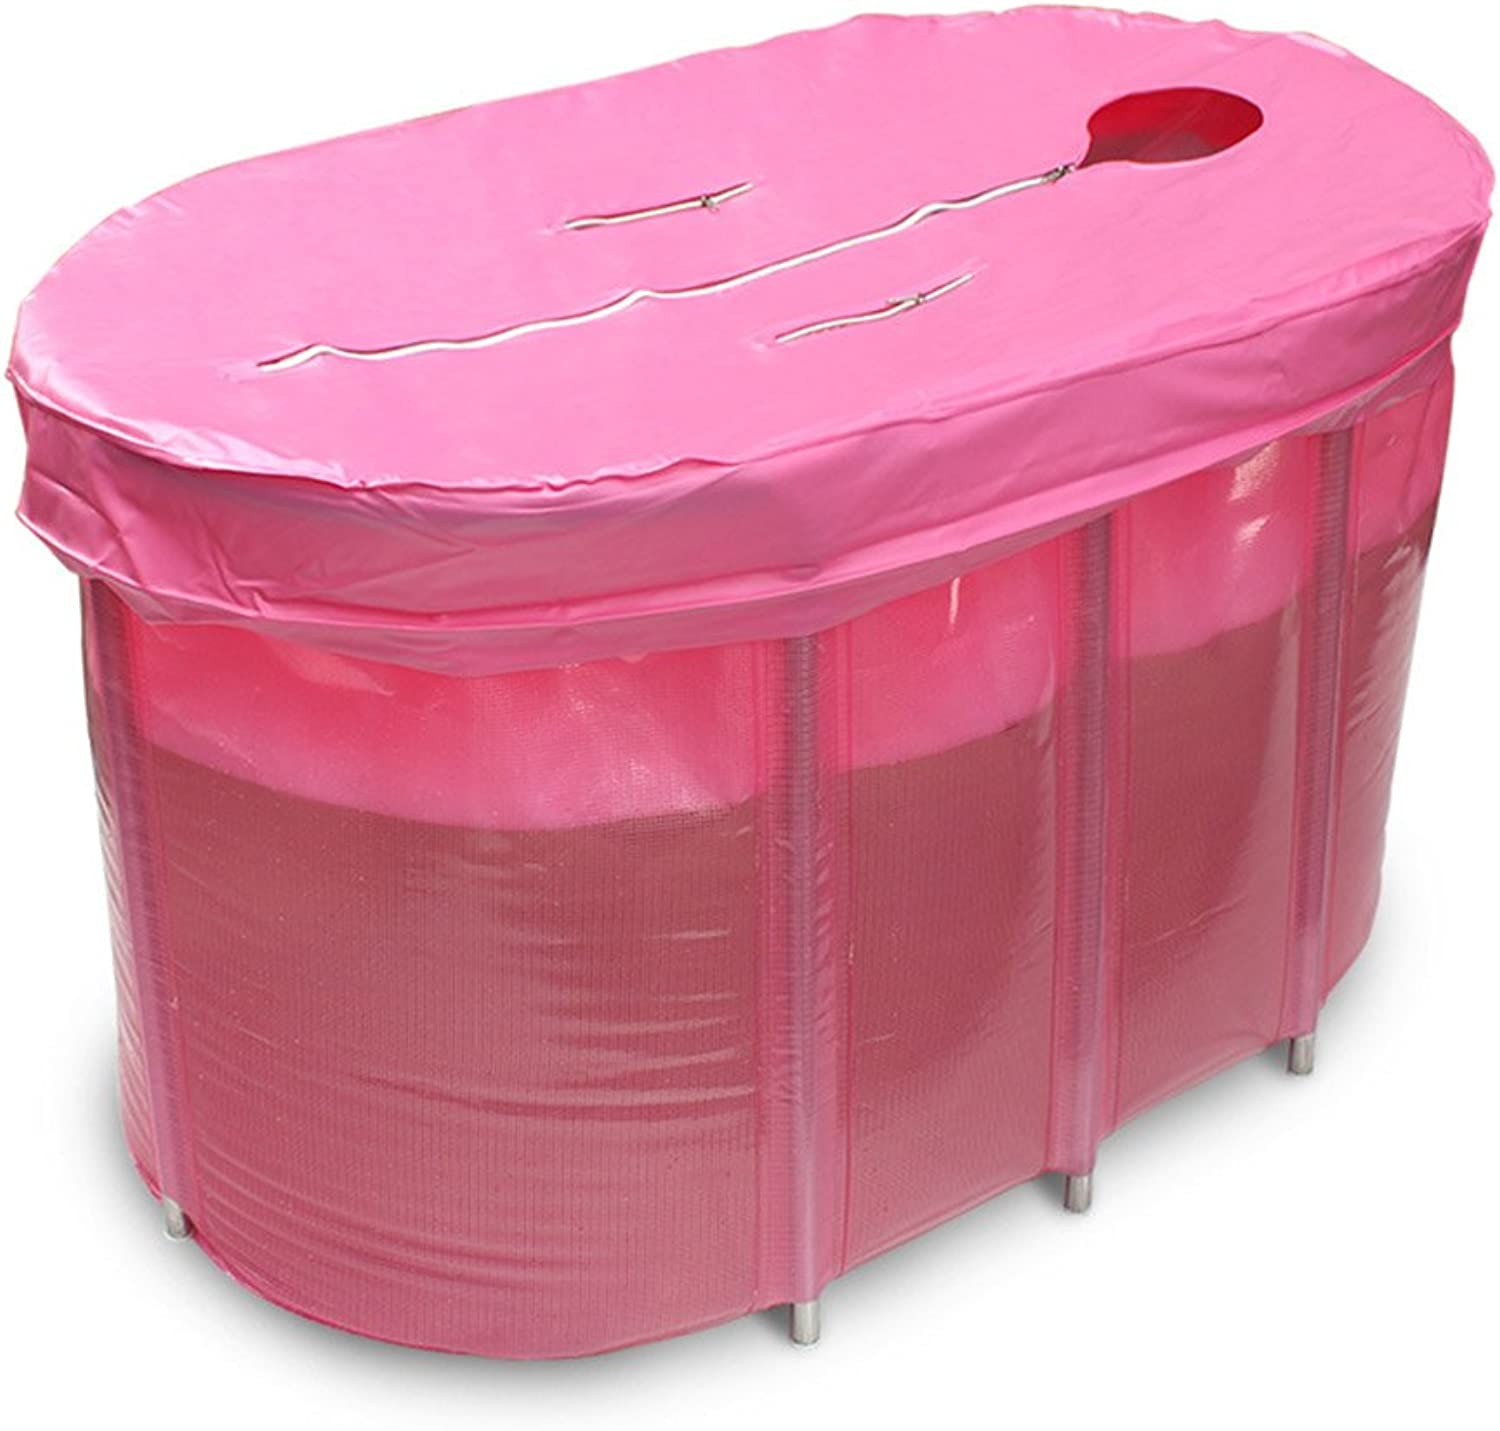 Bathtubs Soaking Baths Adult plastic bath barrel free inflatable thickened thickened thickened plastic folding bath barrel (color   Pink) 790ee6